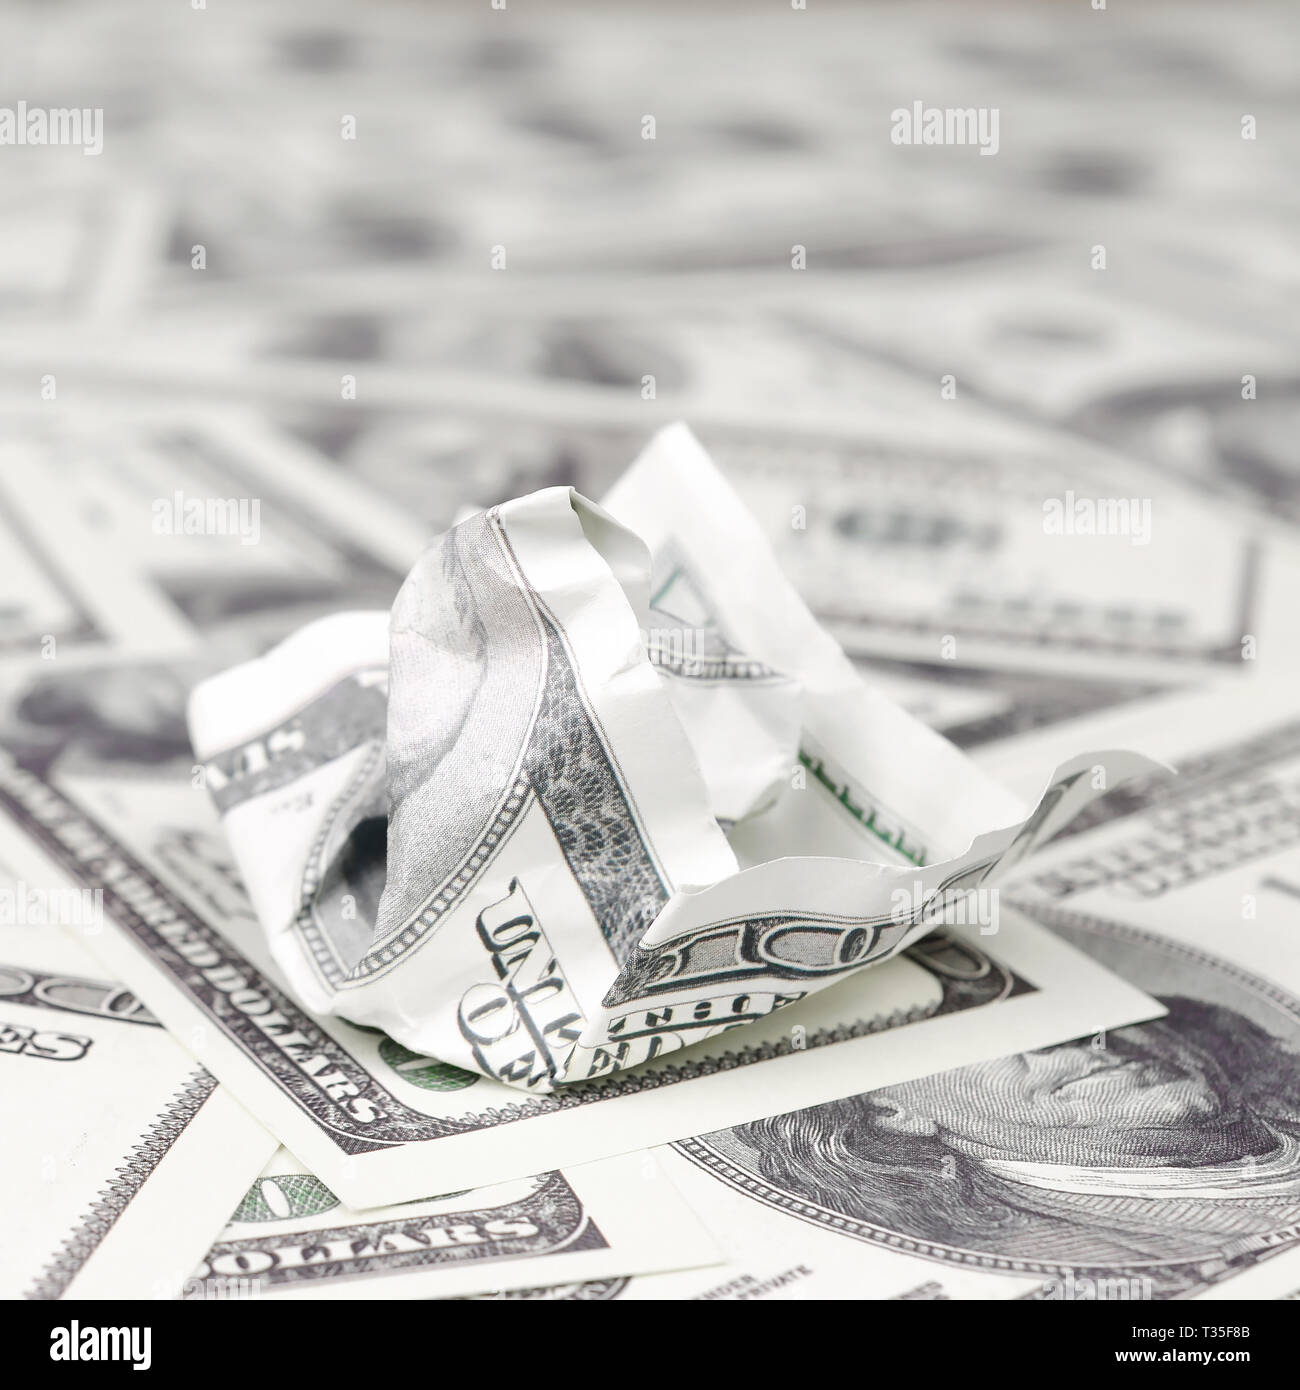 Crumpled dollar bill of the United States lies on the set of smooth money bills. Concept of unreasonable waste of money - Stock Image